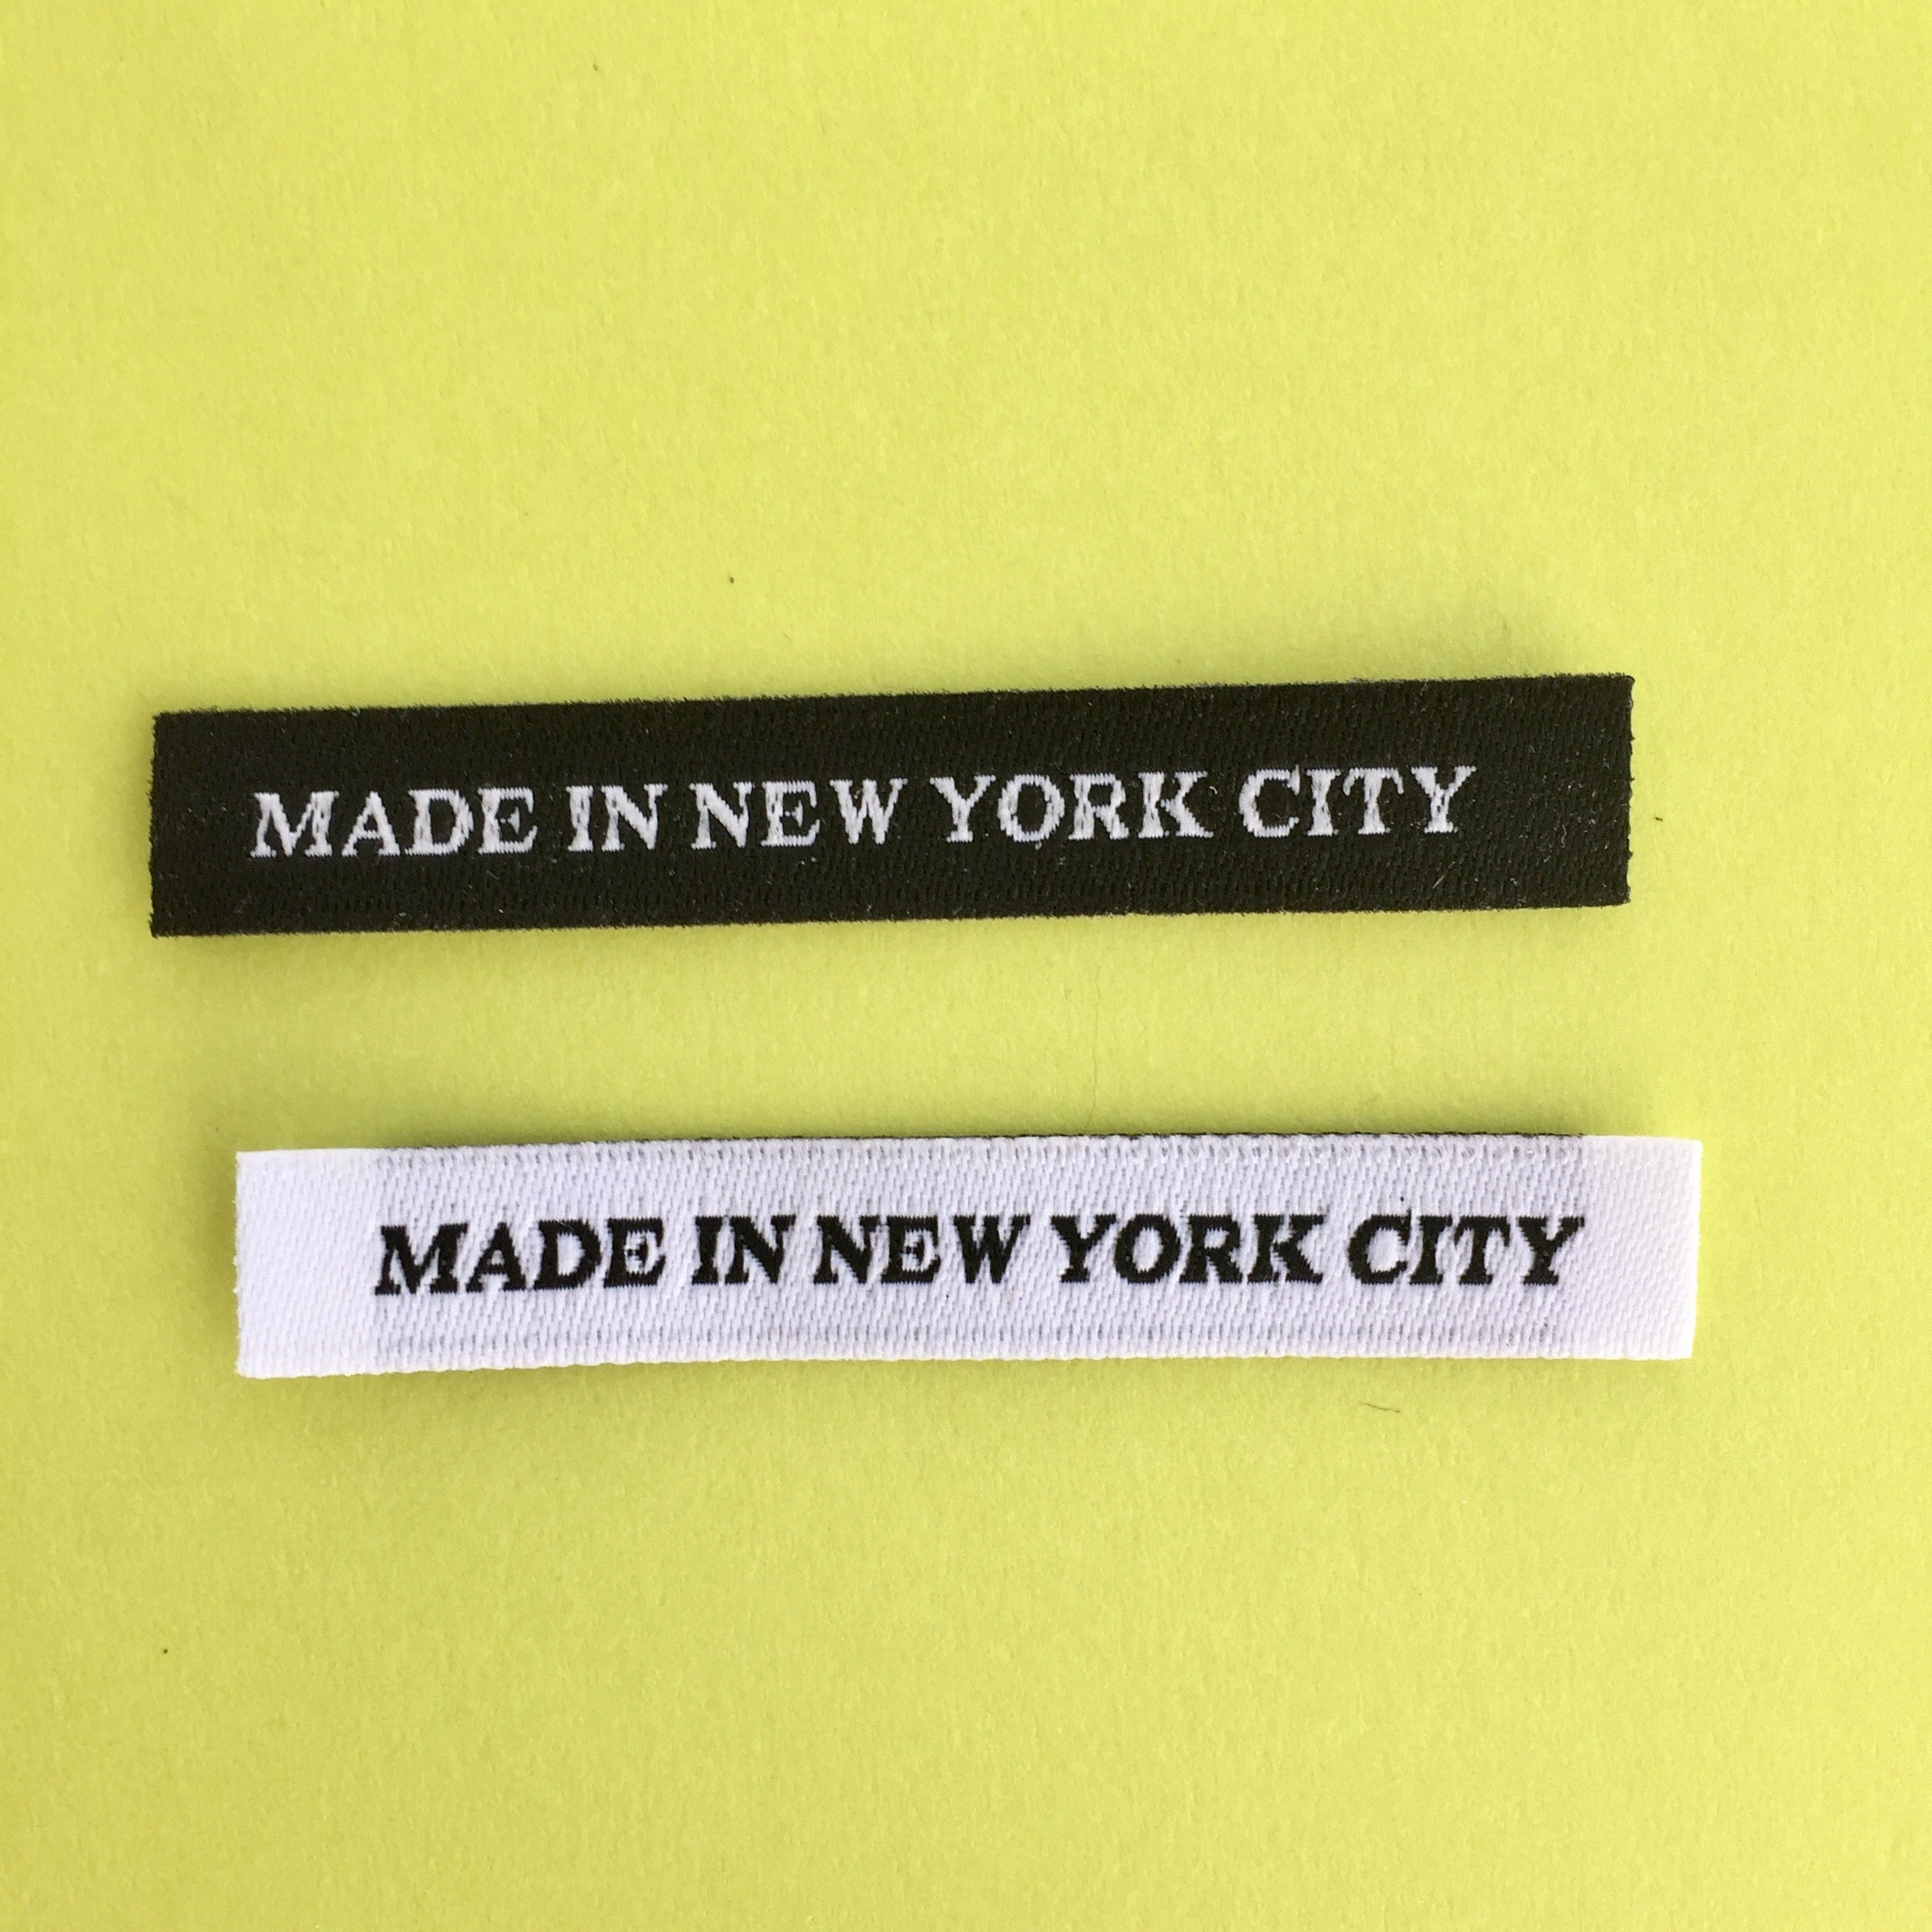 1000 pcs WOVEN GARMENT SEWING SIZE 10 LABELS in Black w White Letter Ship@US